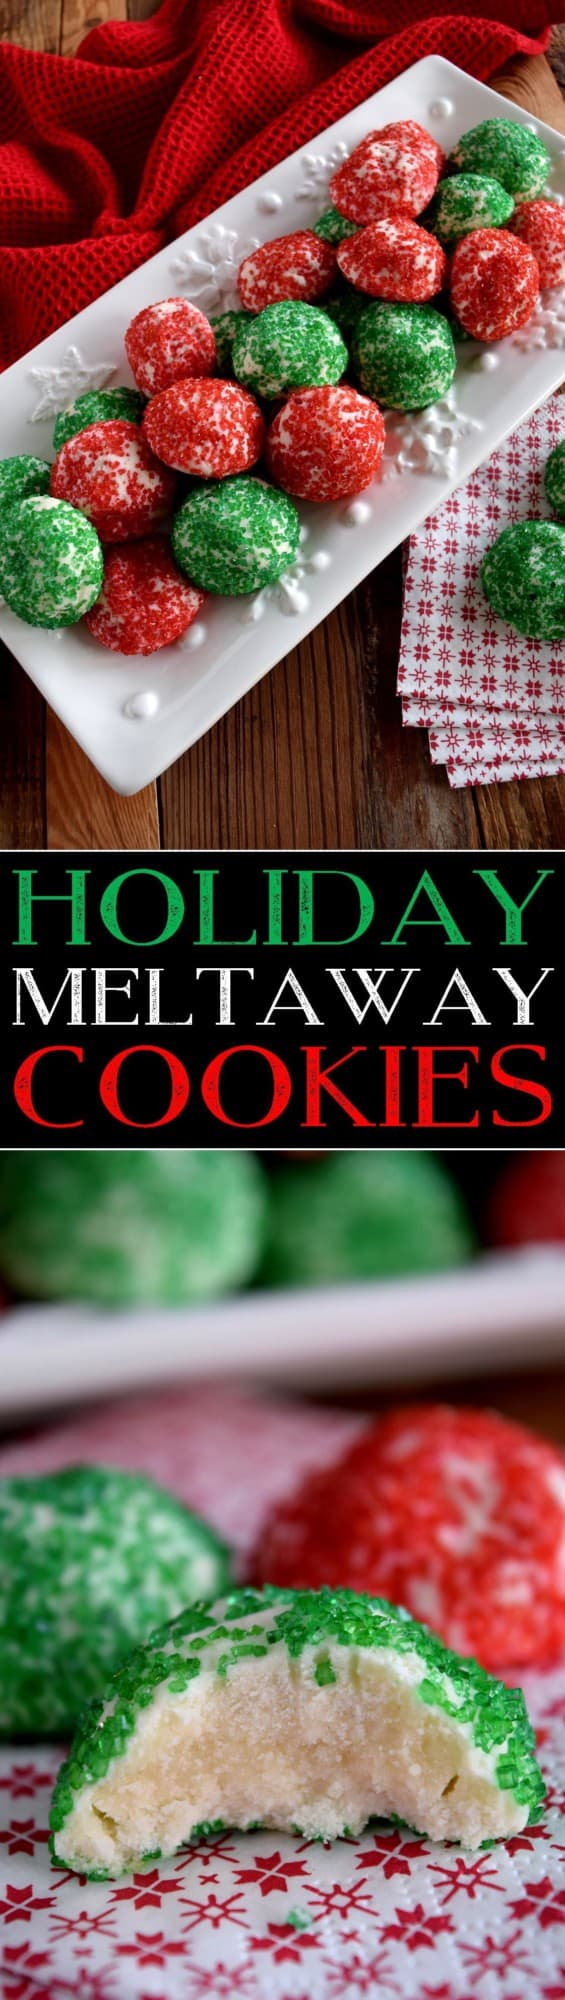 holiday-meltaway-cookies